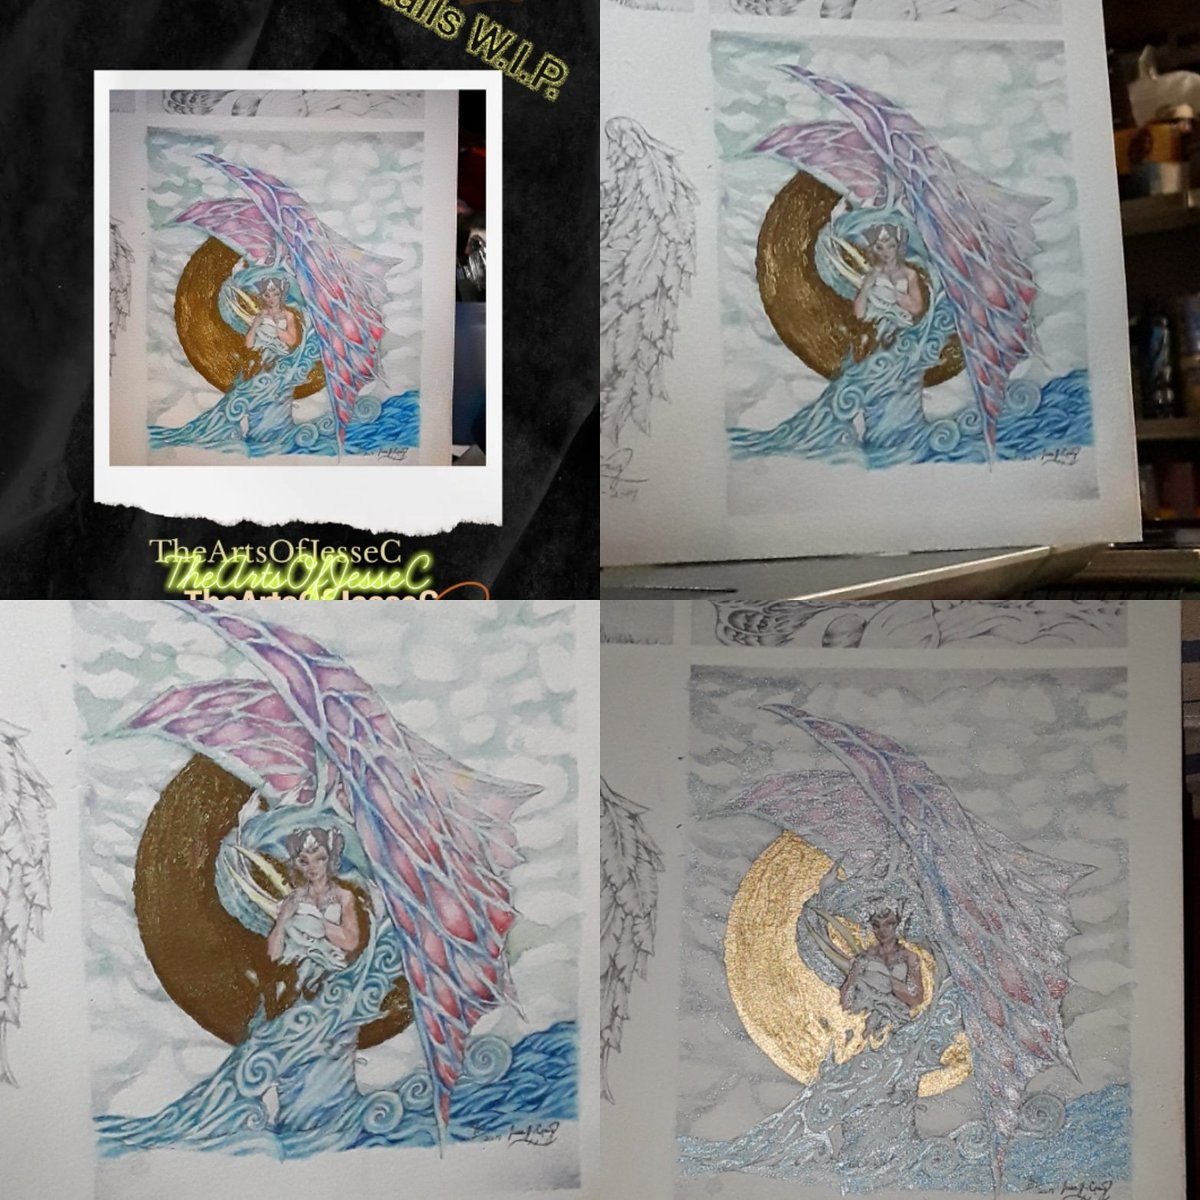 Gonna start strean at 9am(est.) this morning guys .... catch me on my #twitch @ http://twitch.tv/zombiedragonmkcraig… today I will be #sketching  #watercolorart #painting #acrylic #chillin #experimenting #arting & playin with #fantasy #fantasyart #dragonart #darkart #traditionalart & yeah! pic.twitter.com/auyDwwZ1vH